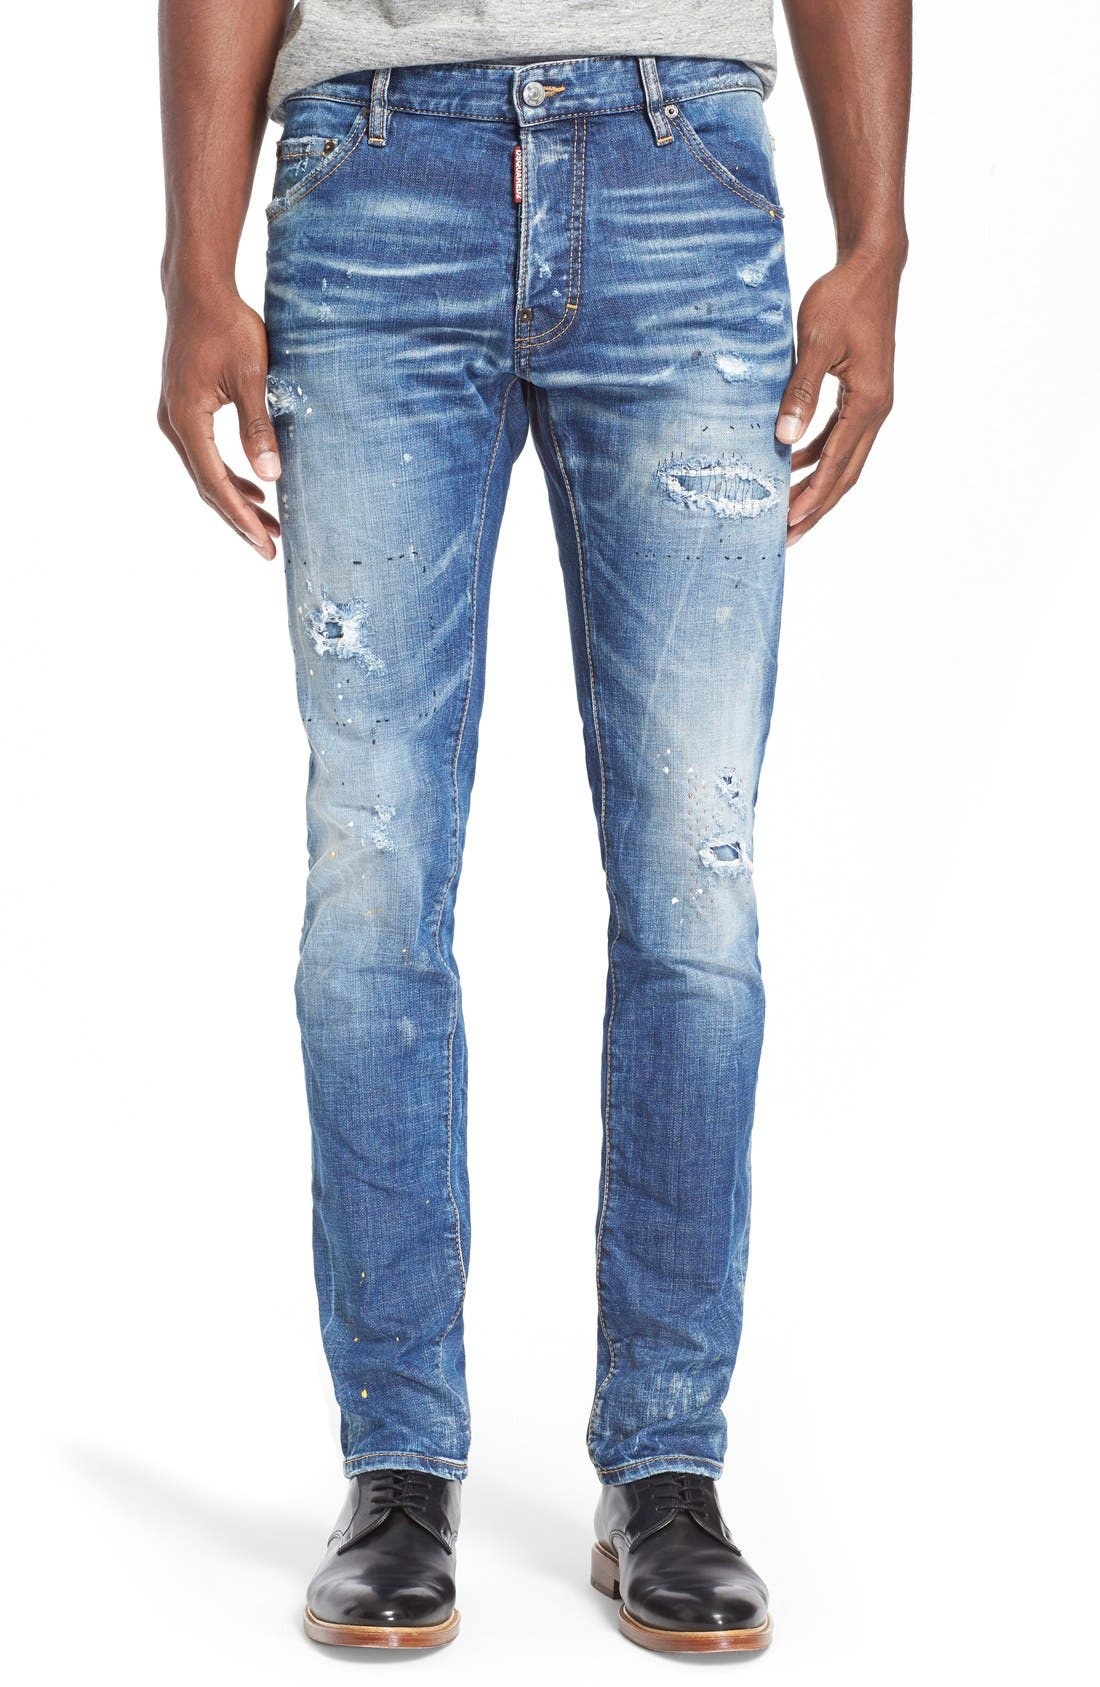 Alternate Image 1 Selected - Dsquared2 'Cool Guy' Ripped & Repaired Slim Fit Jeans